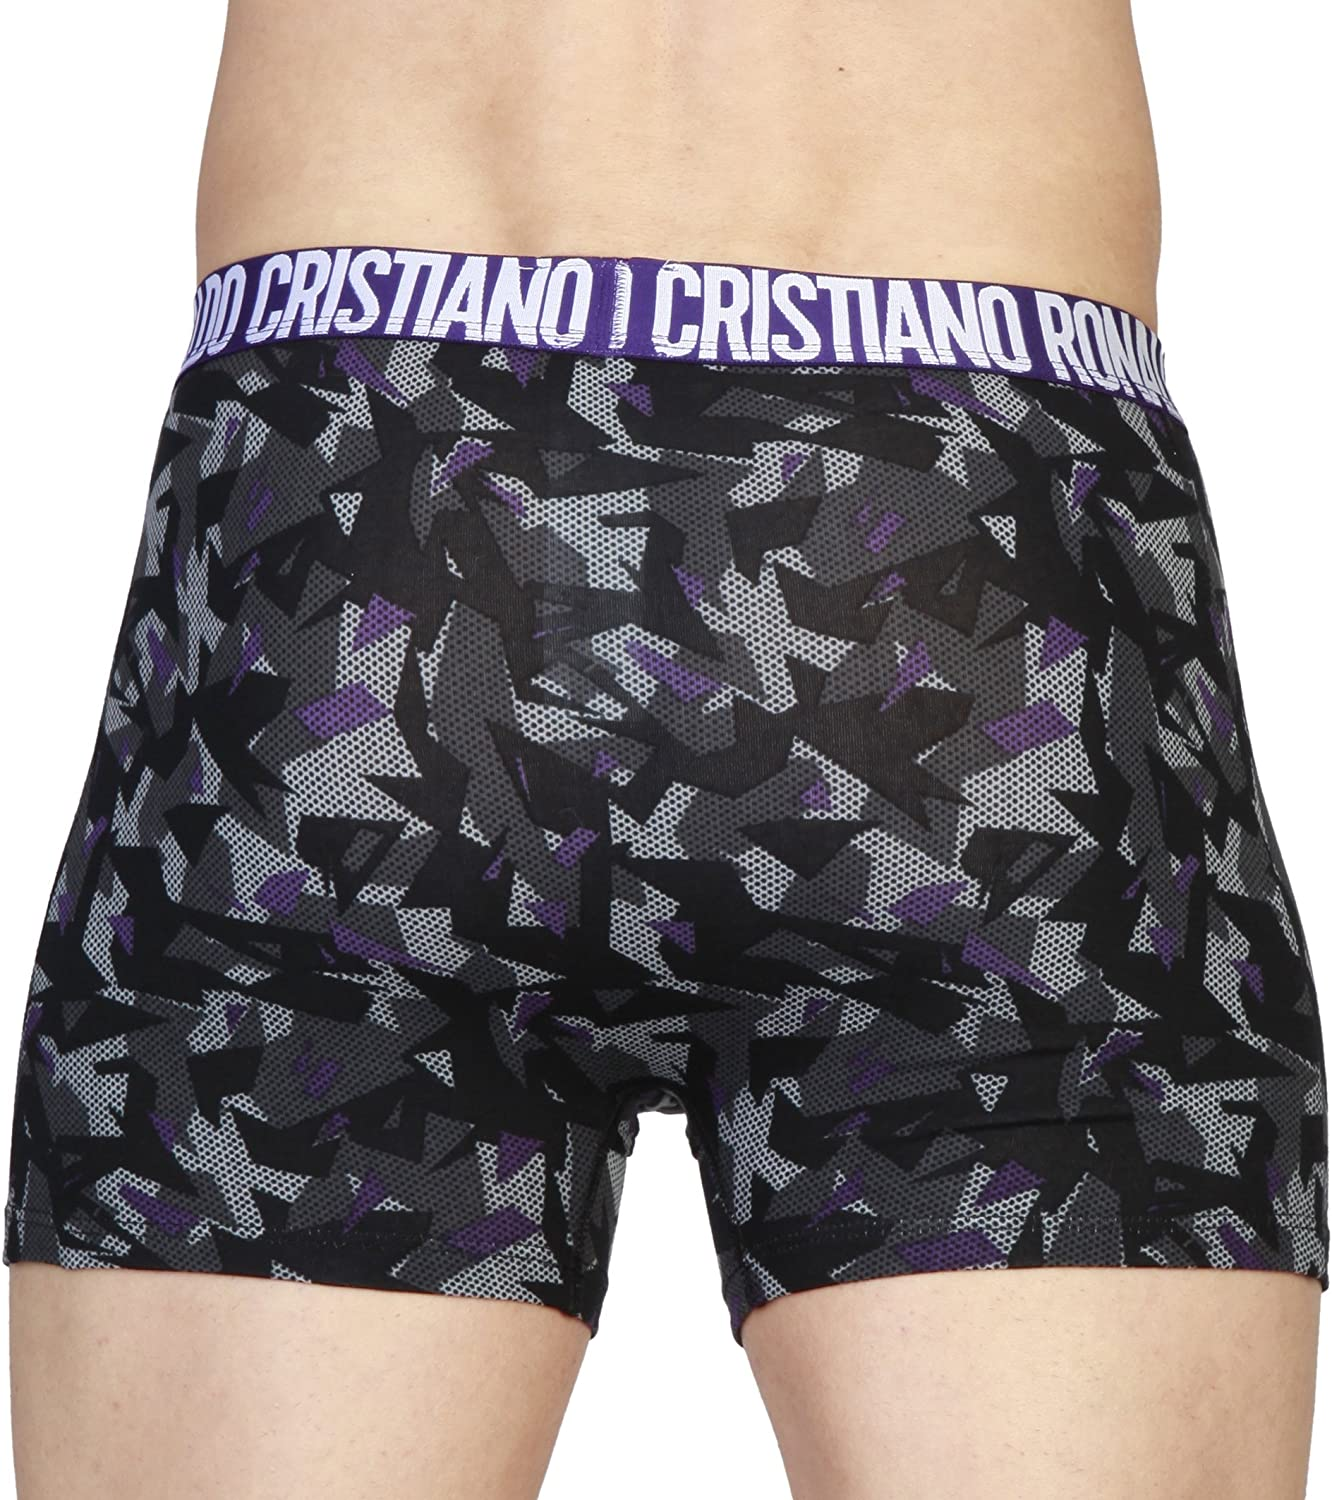 YAMAMAY® Multipack trunks - CR7